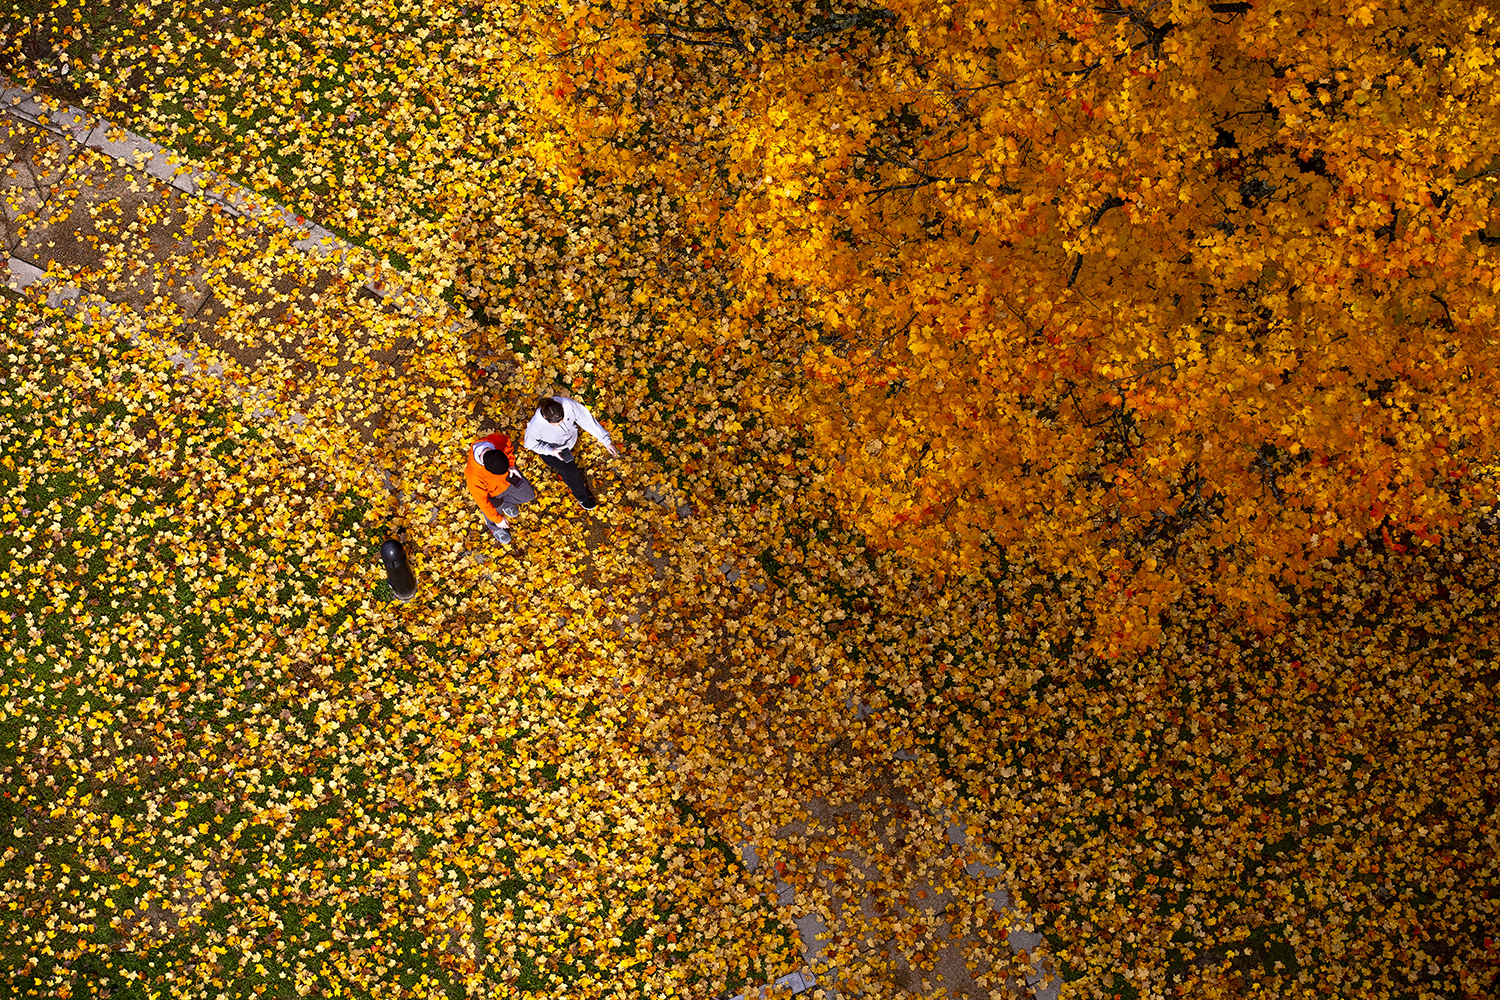 Dylan and Taylor Fuda walk through a carpet of orange and yellow leaves on the ground from the maple trees near the Rees Memorial Carillon Friday, Nov. 2, 2018 in Washington Park in Springfield, Ill. [Rich Saal/The State Journal-Register]